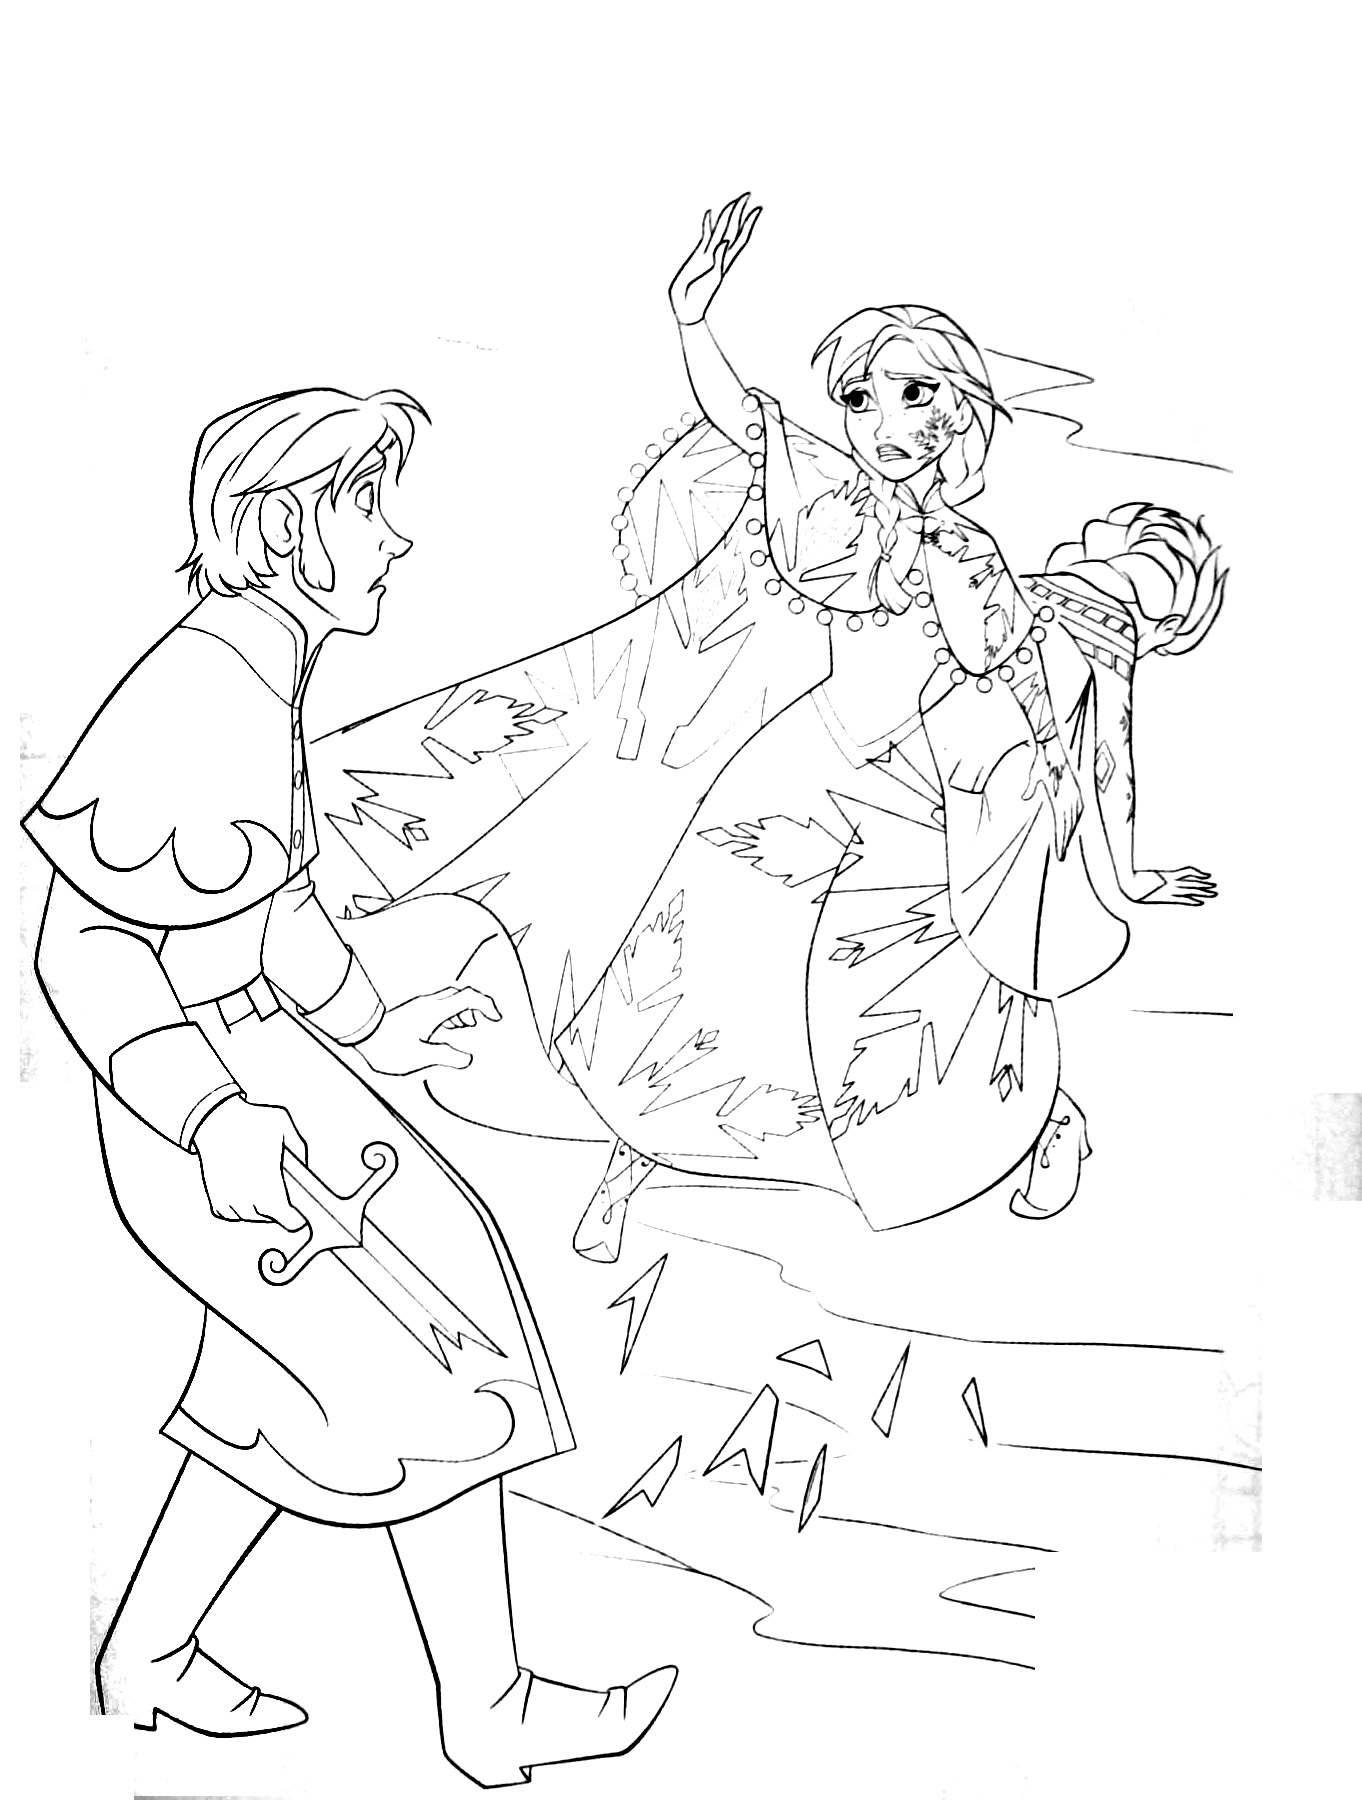 Funny Frozen coloring page for kids : Elsa protecting Anna from Hans